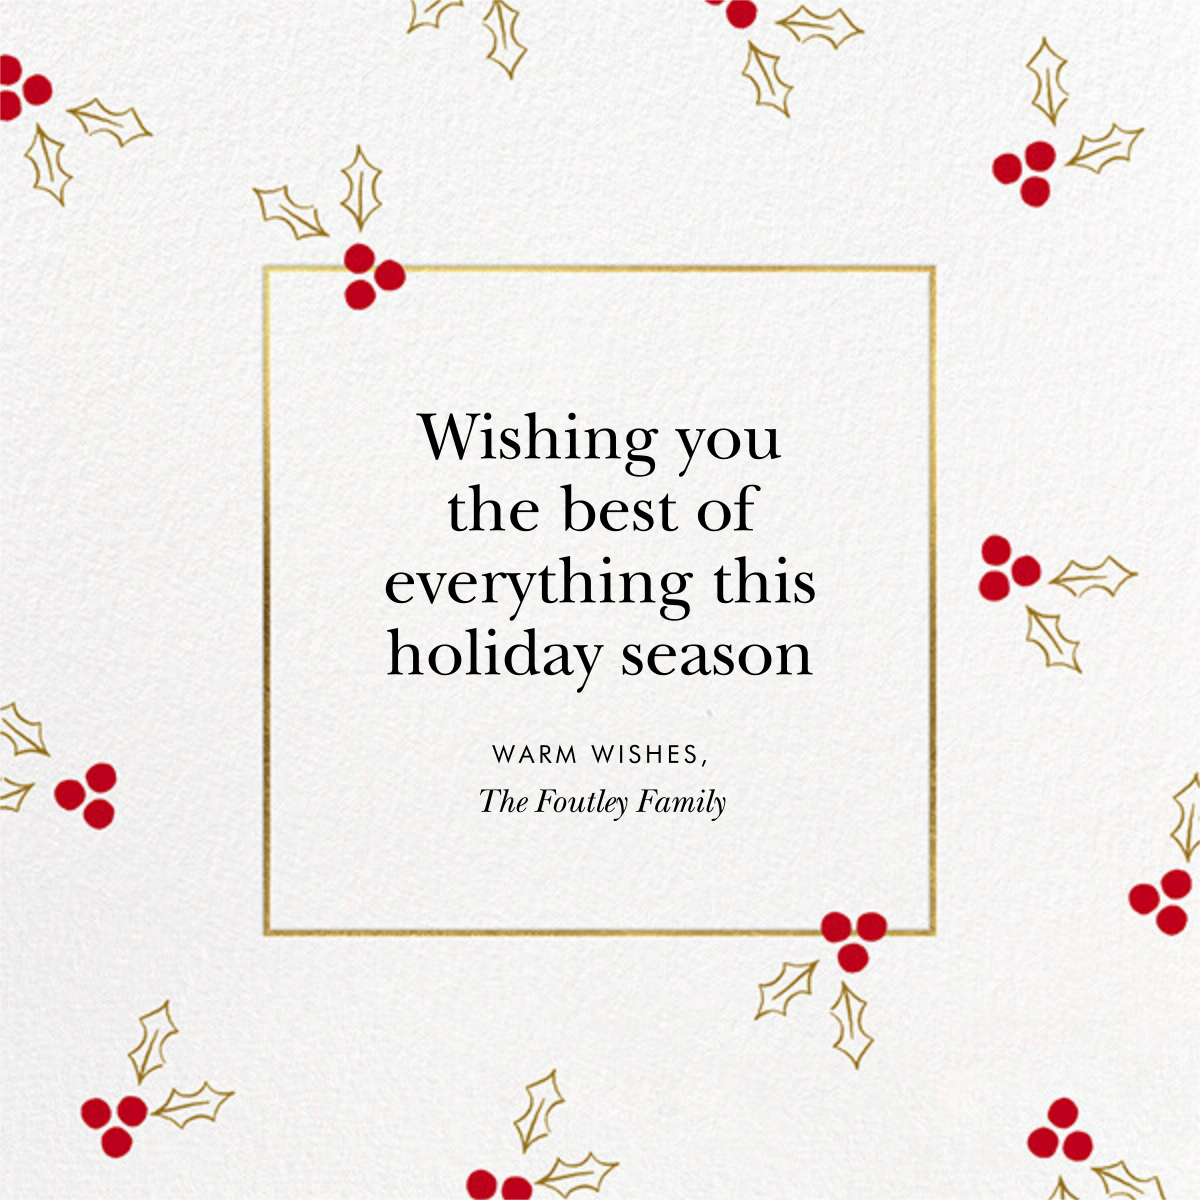 Golden Berries Photo - kate spade new york - Holiday cards - card back